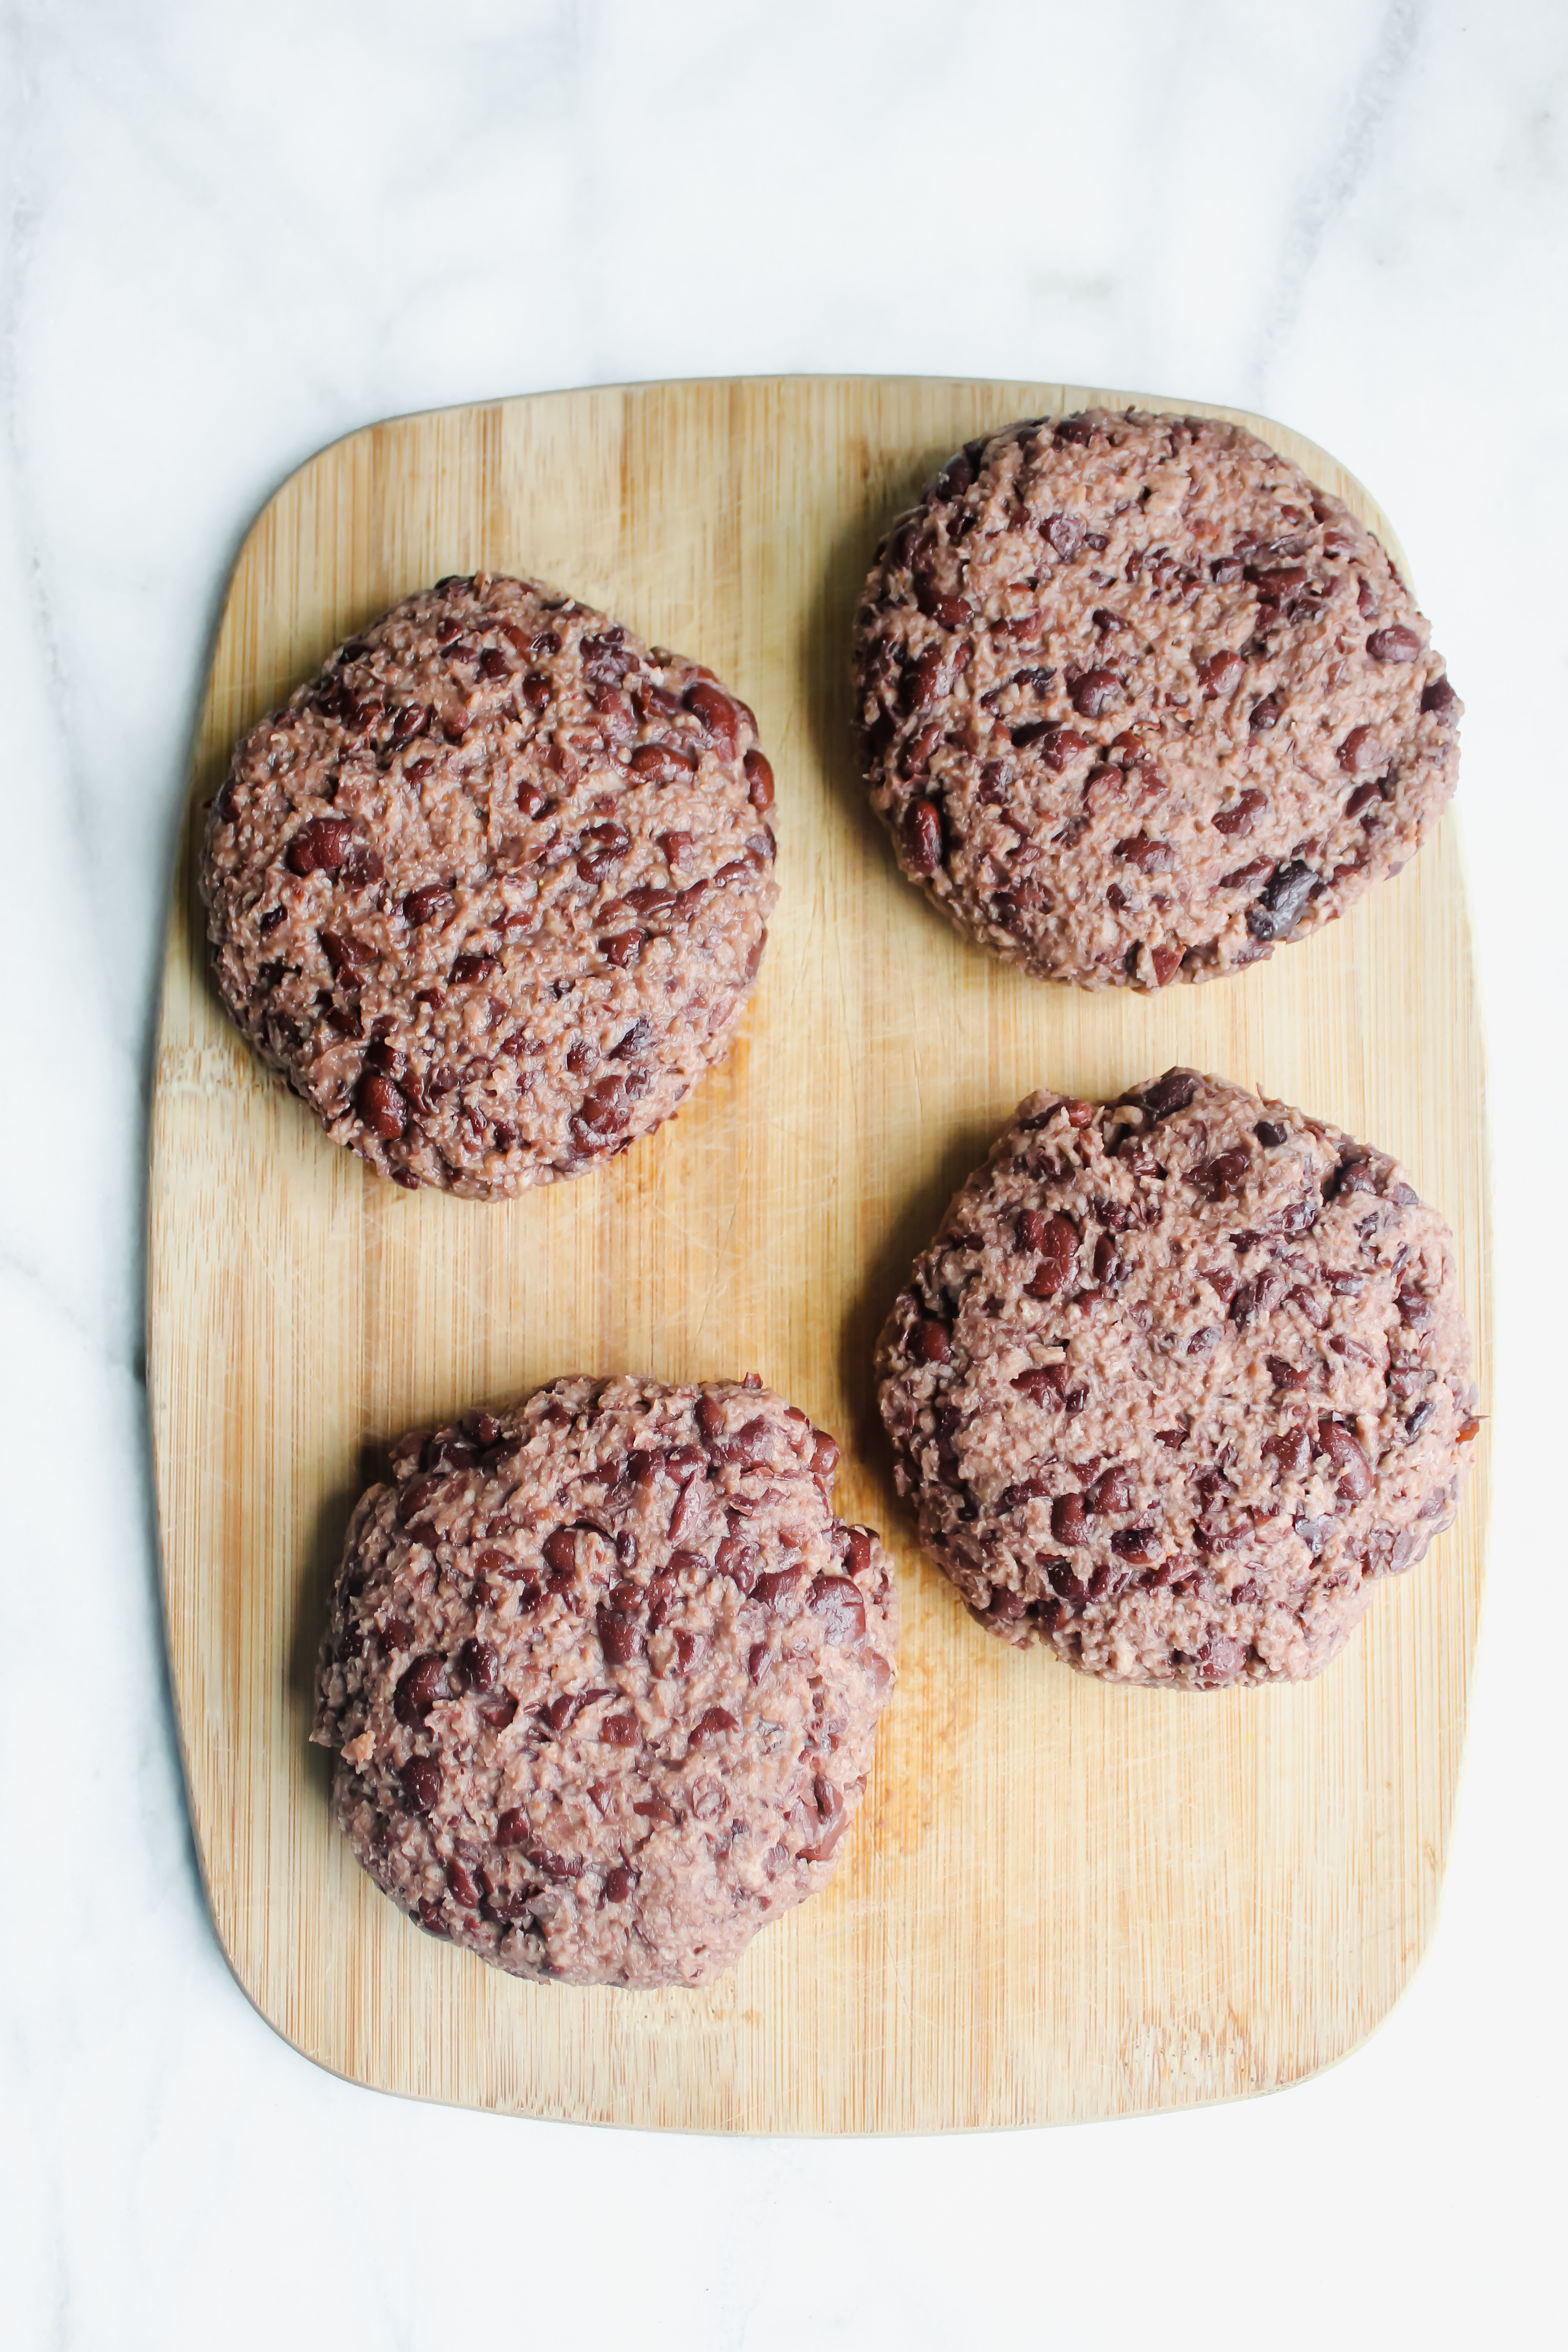 Easy Black Bean Burgers pattied into burgers pre-cook